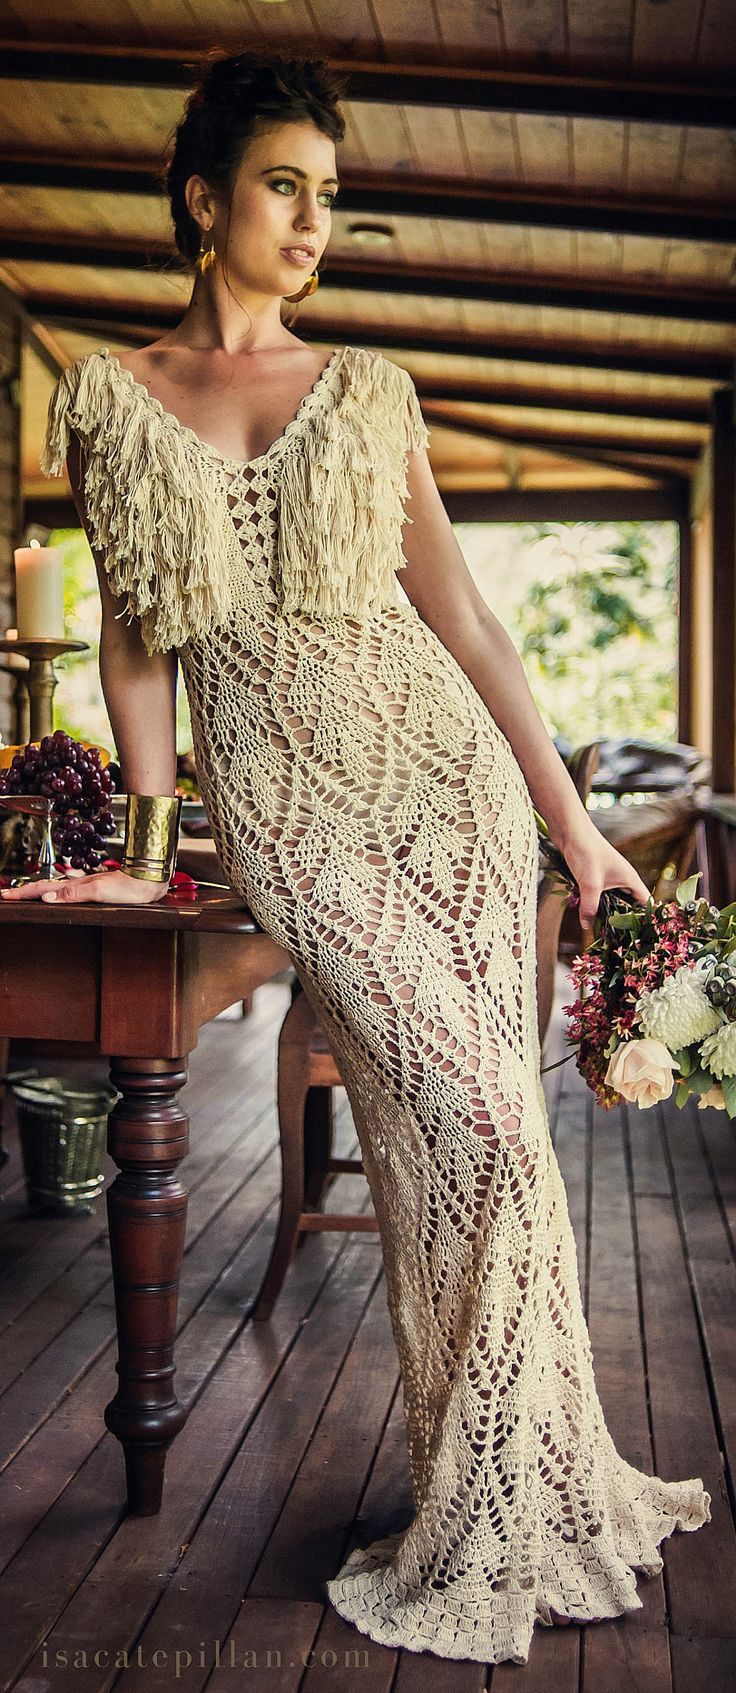 handmade crochet dress by IsaCatepillan on Etsy